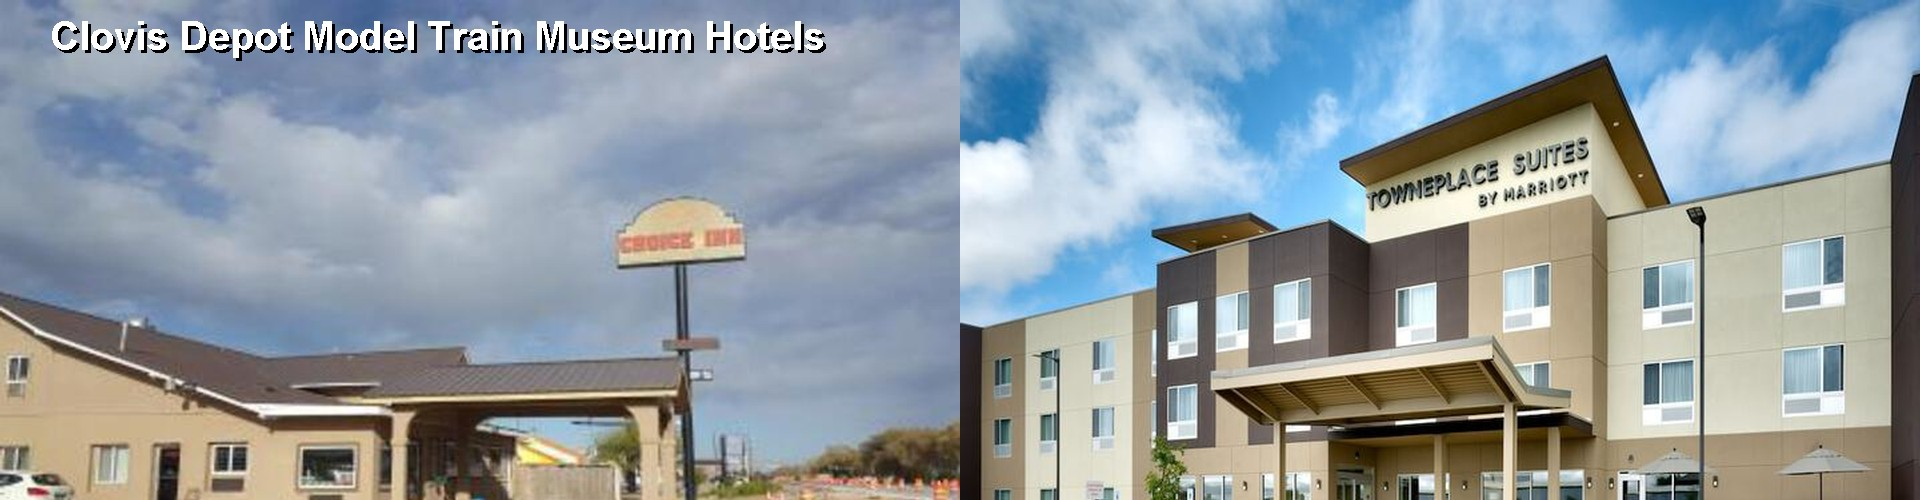 5 Best Hotels near Clovis Depot Model Train Museum